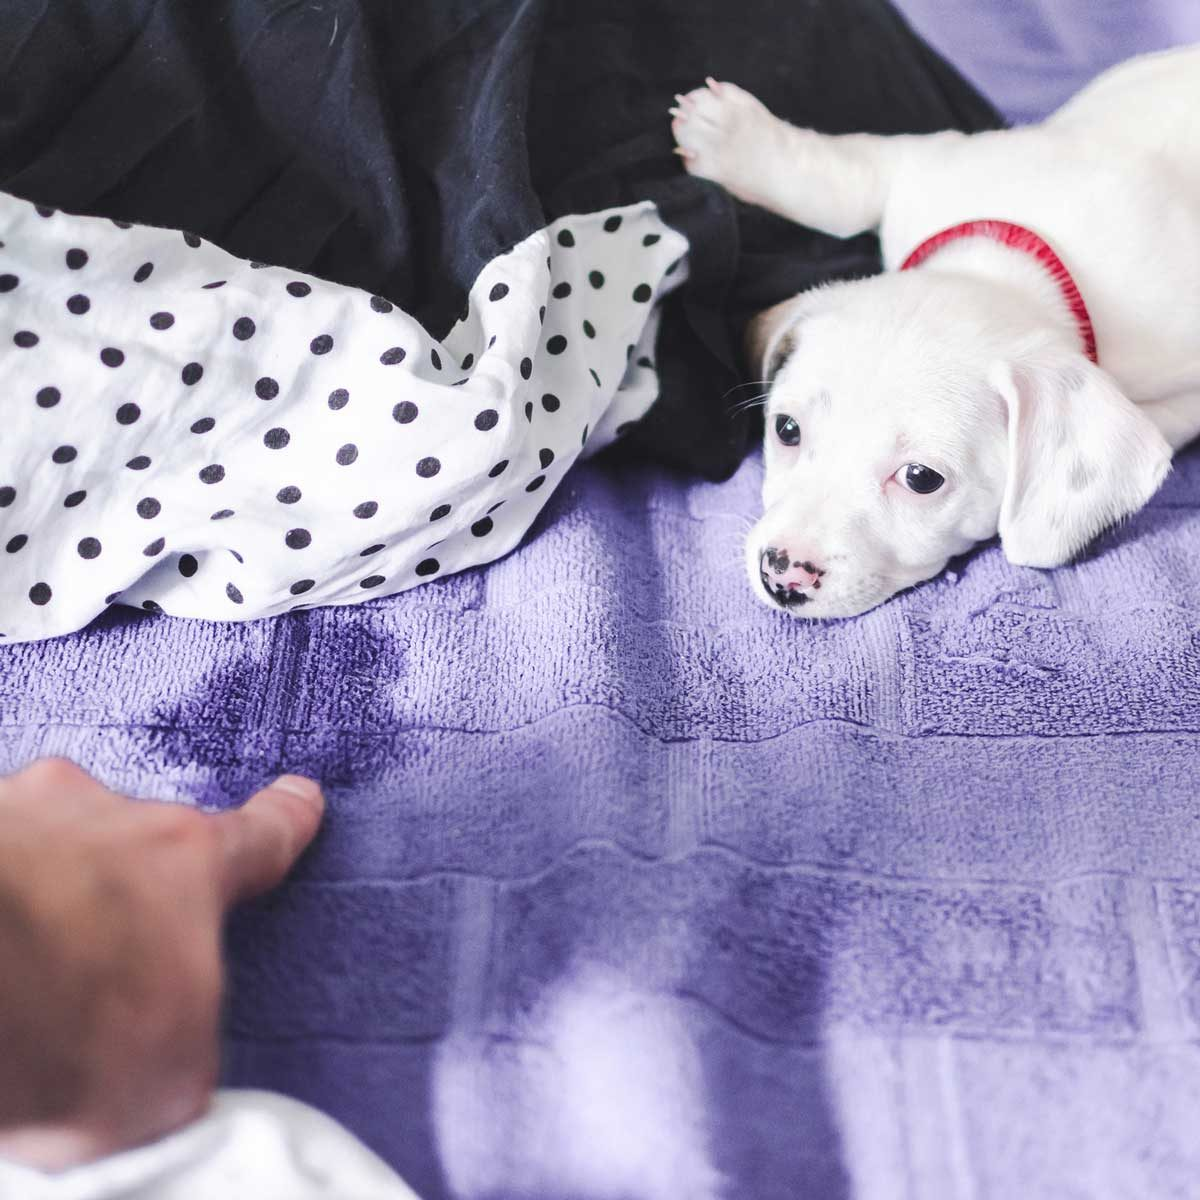 Puppy next to accident on a bed